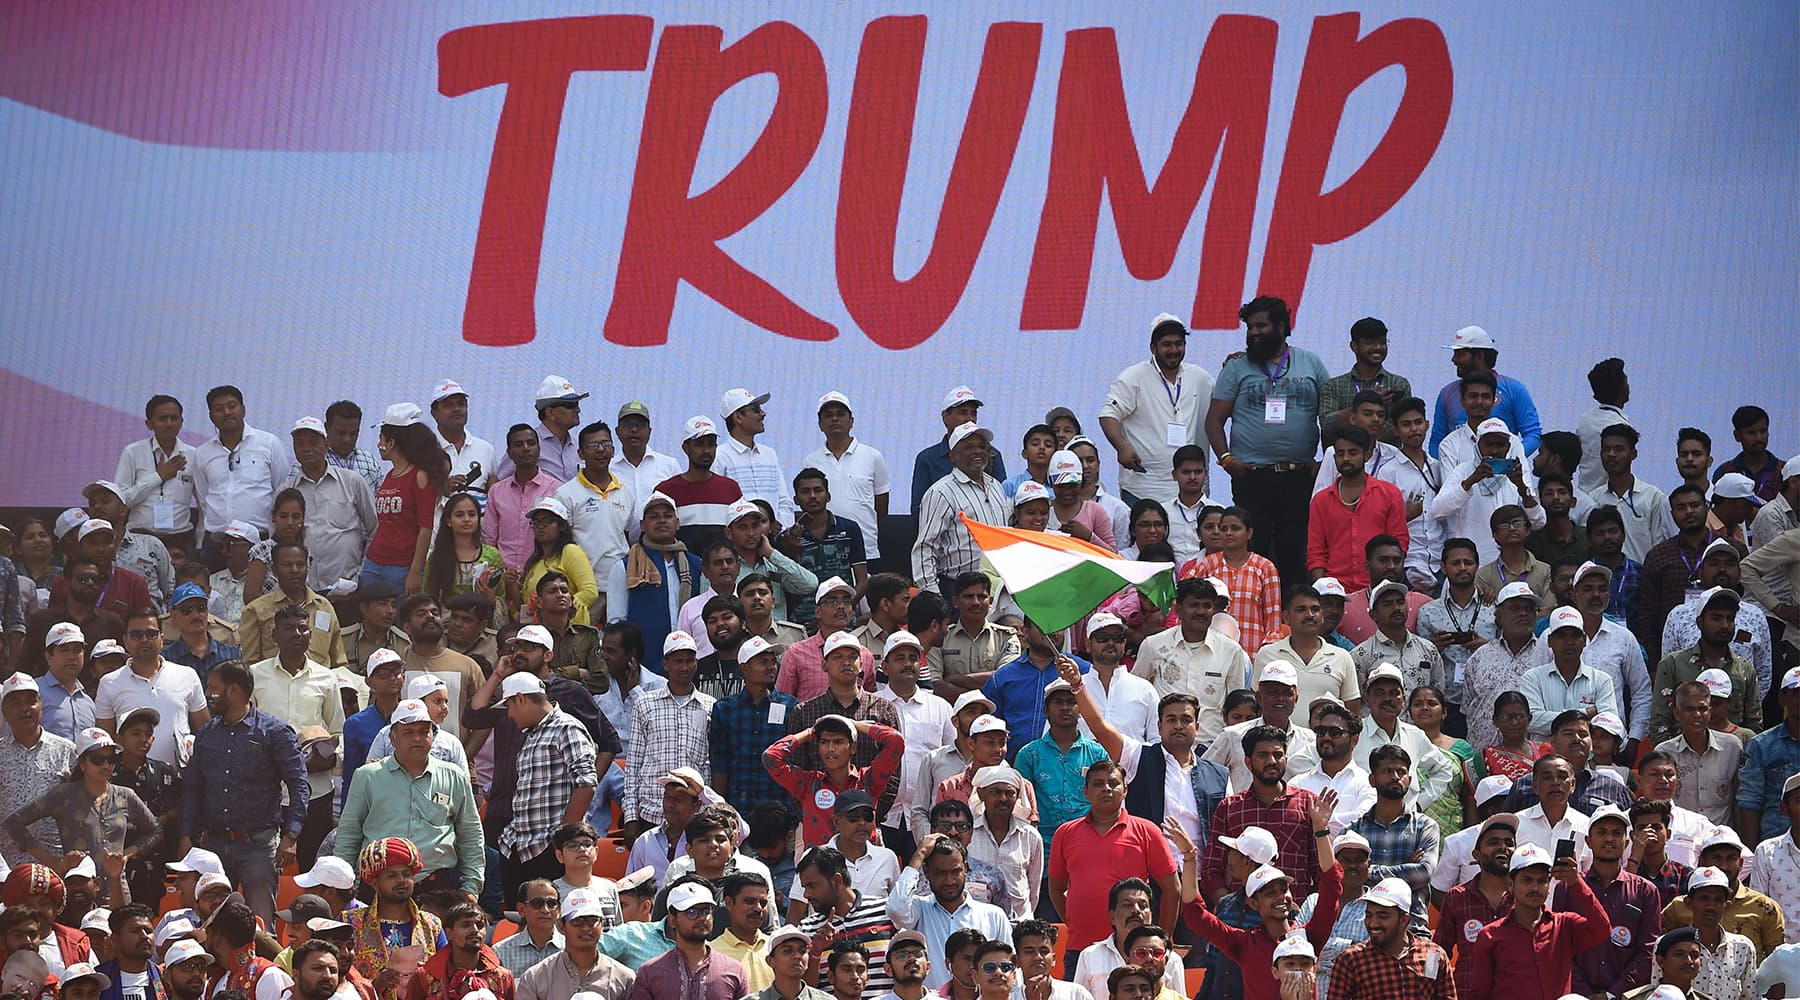 People attend 'Namaste Trump' rally at Sardar Patel Stadium in Motera, on the outskirts of Ahmedabad on Feb 24. — AFP